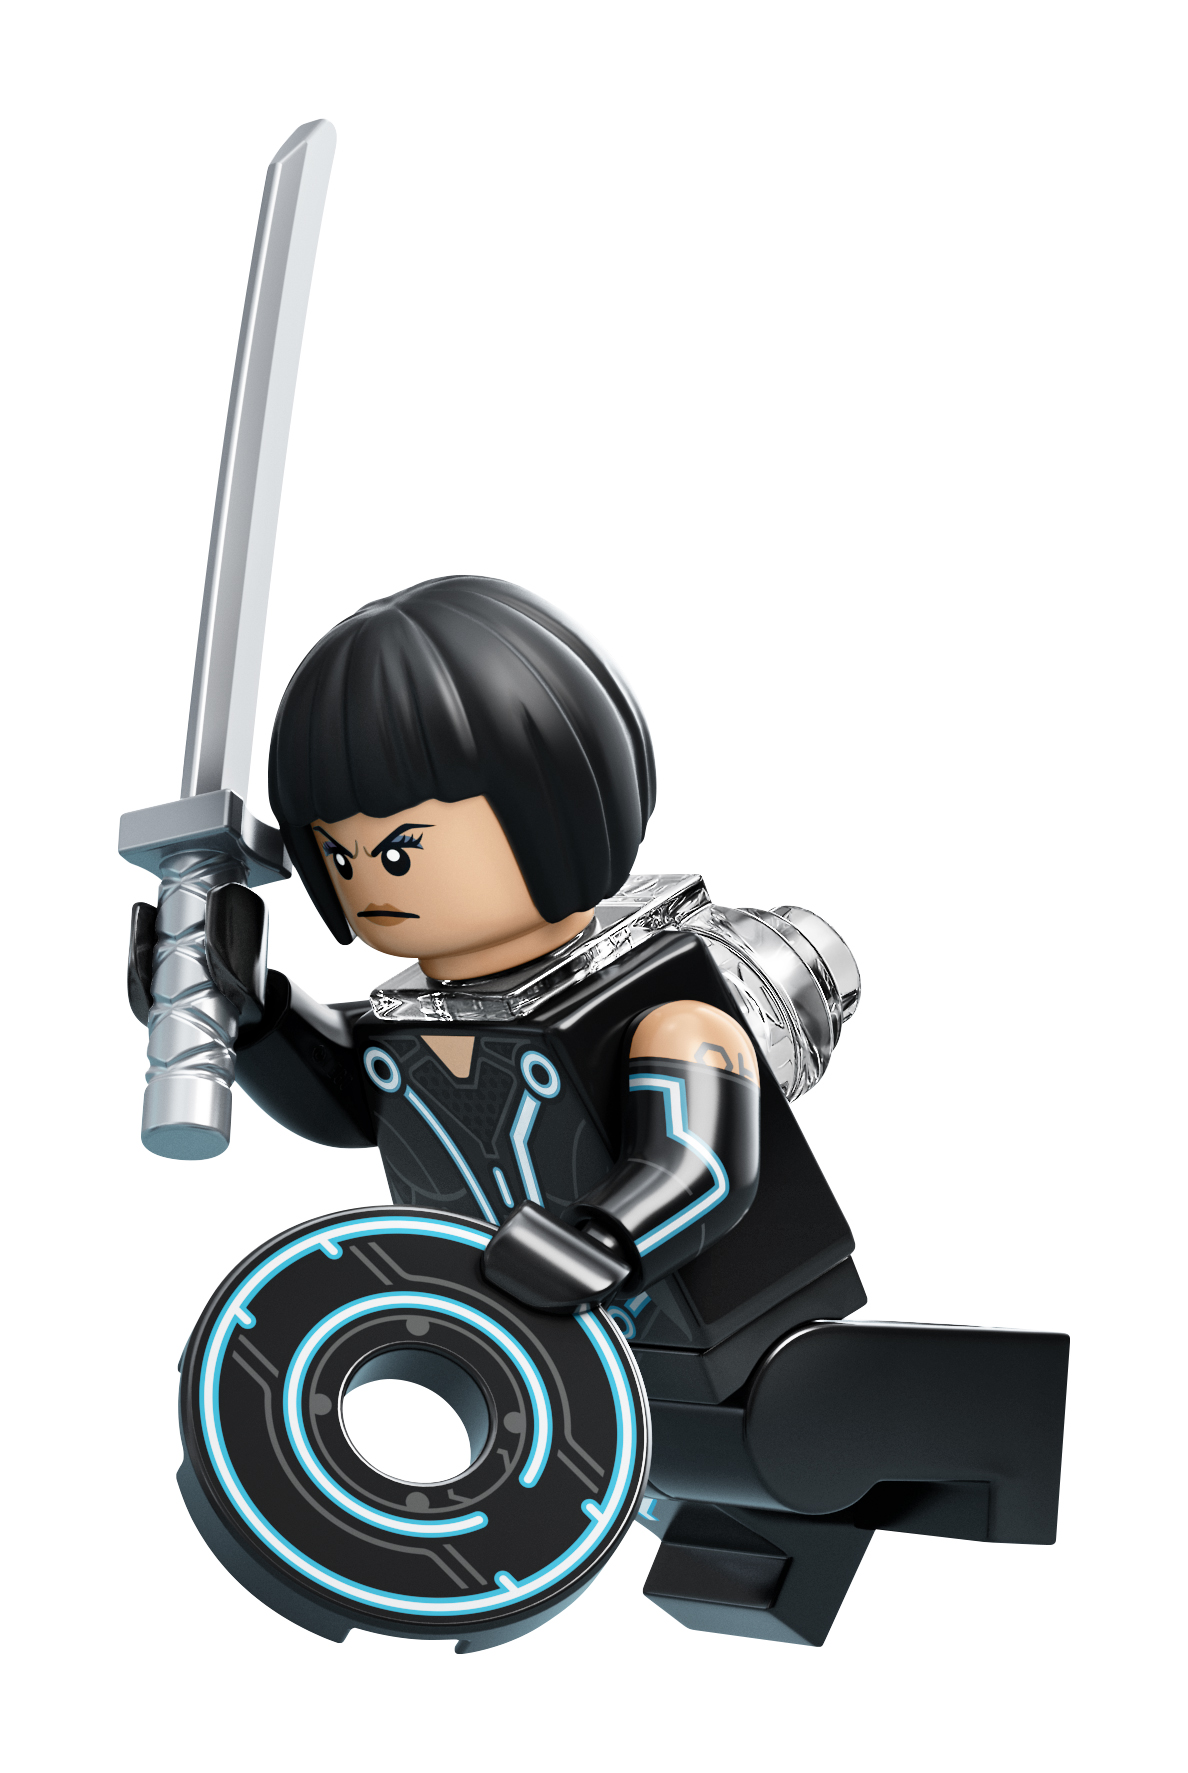 Lego Ideas Tron Legacy Set 21314 Is Out End March 2018 Geek Culture